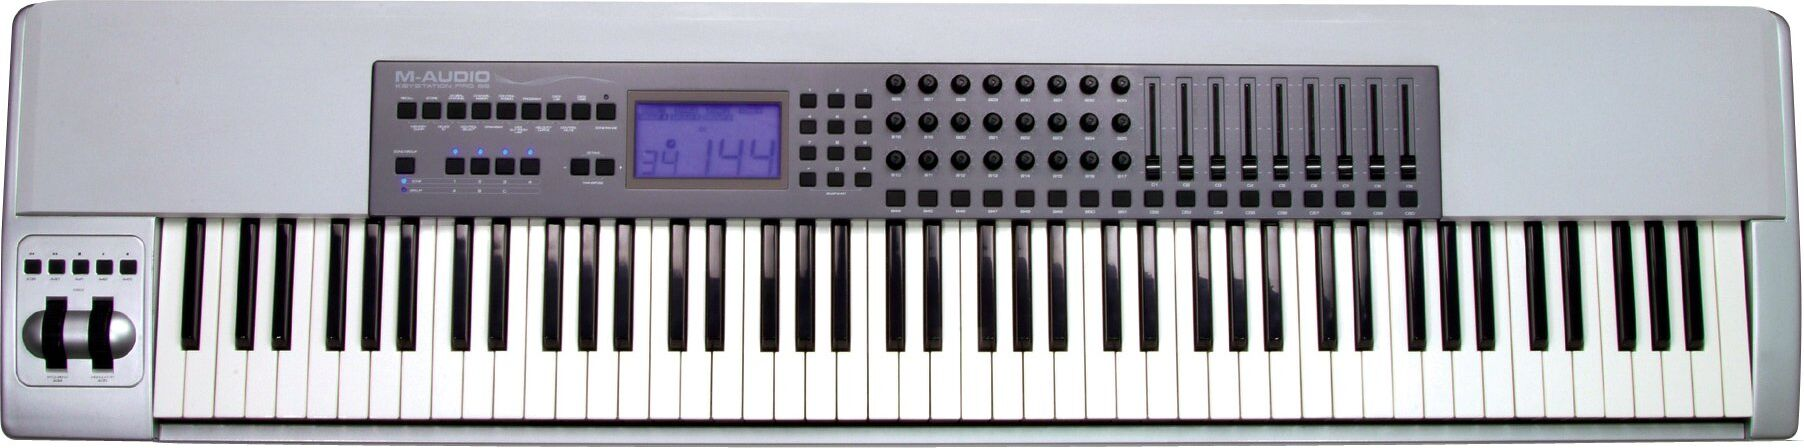 m-audio-keystation-pro-88_2.jpg